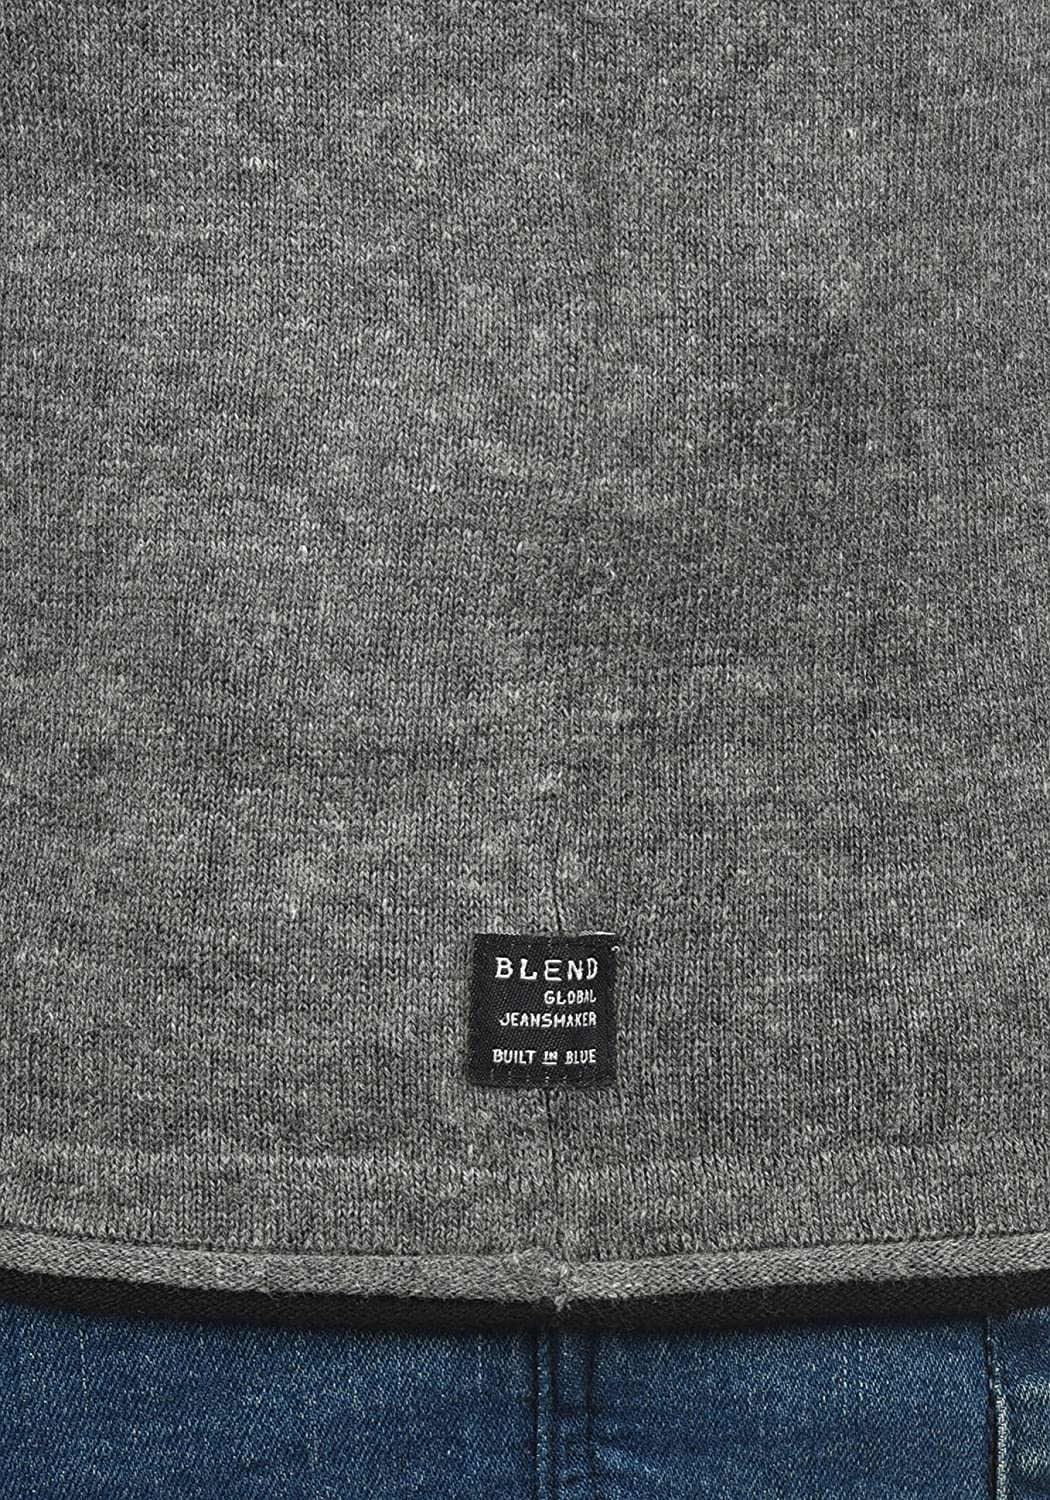 Blend Odin Mens Jumper Knit Pullover with Crew Neck Made of 100/% Cotton